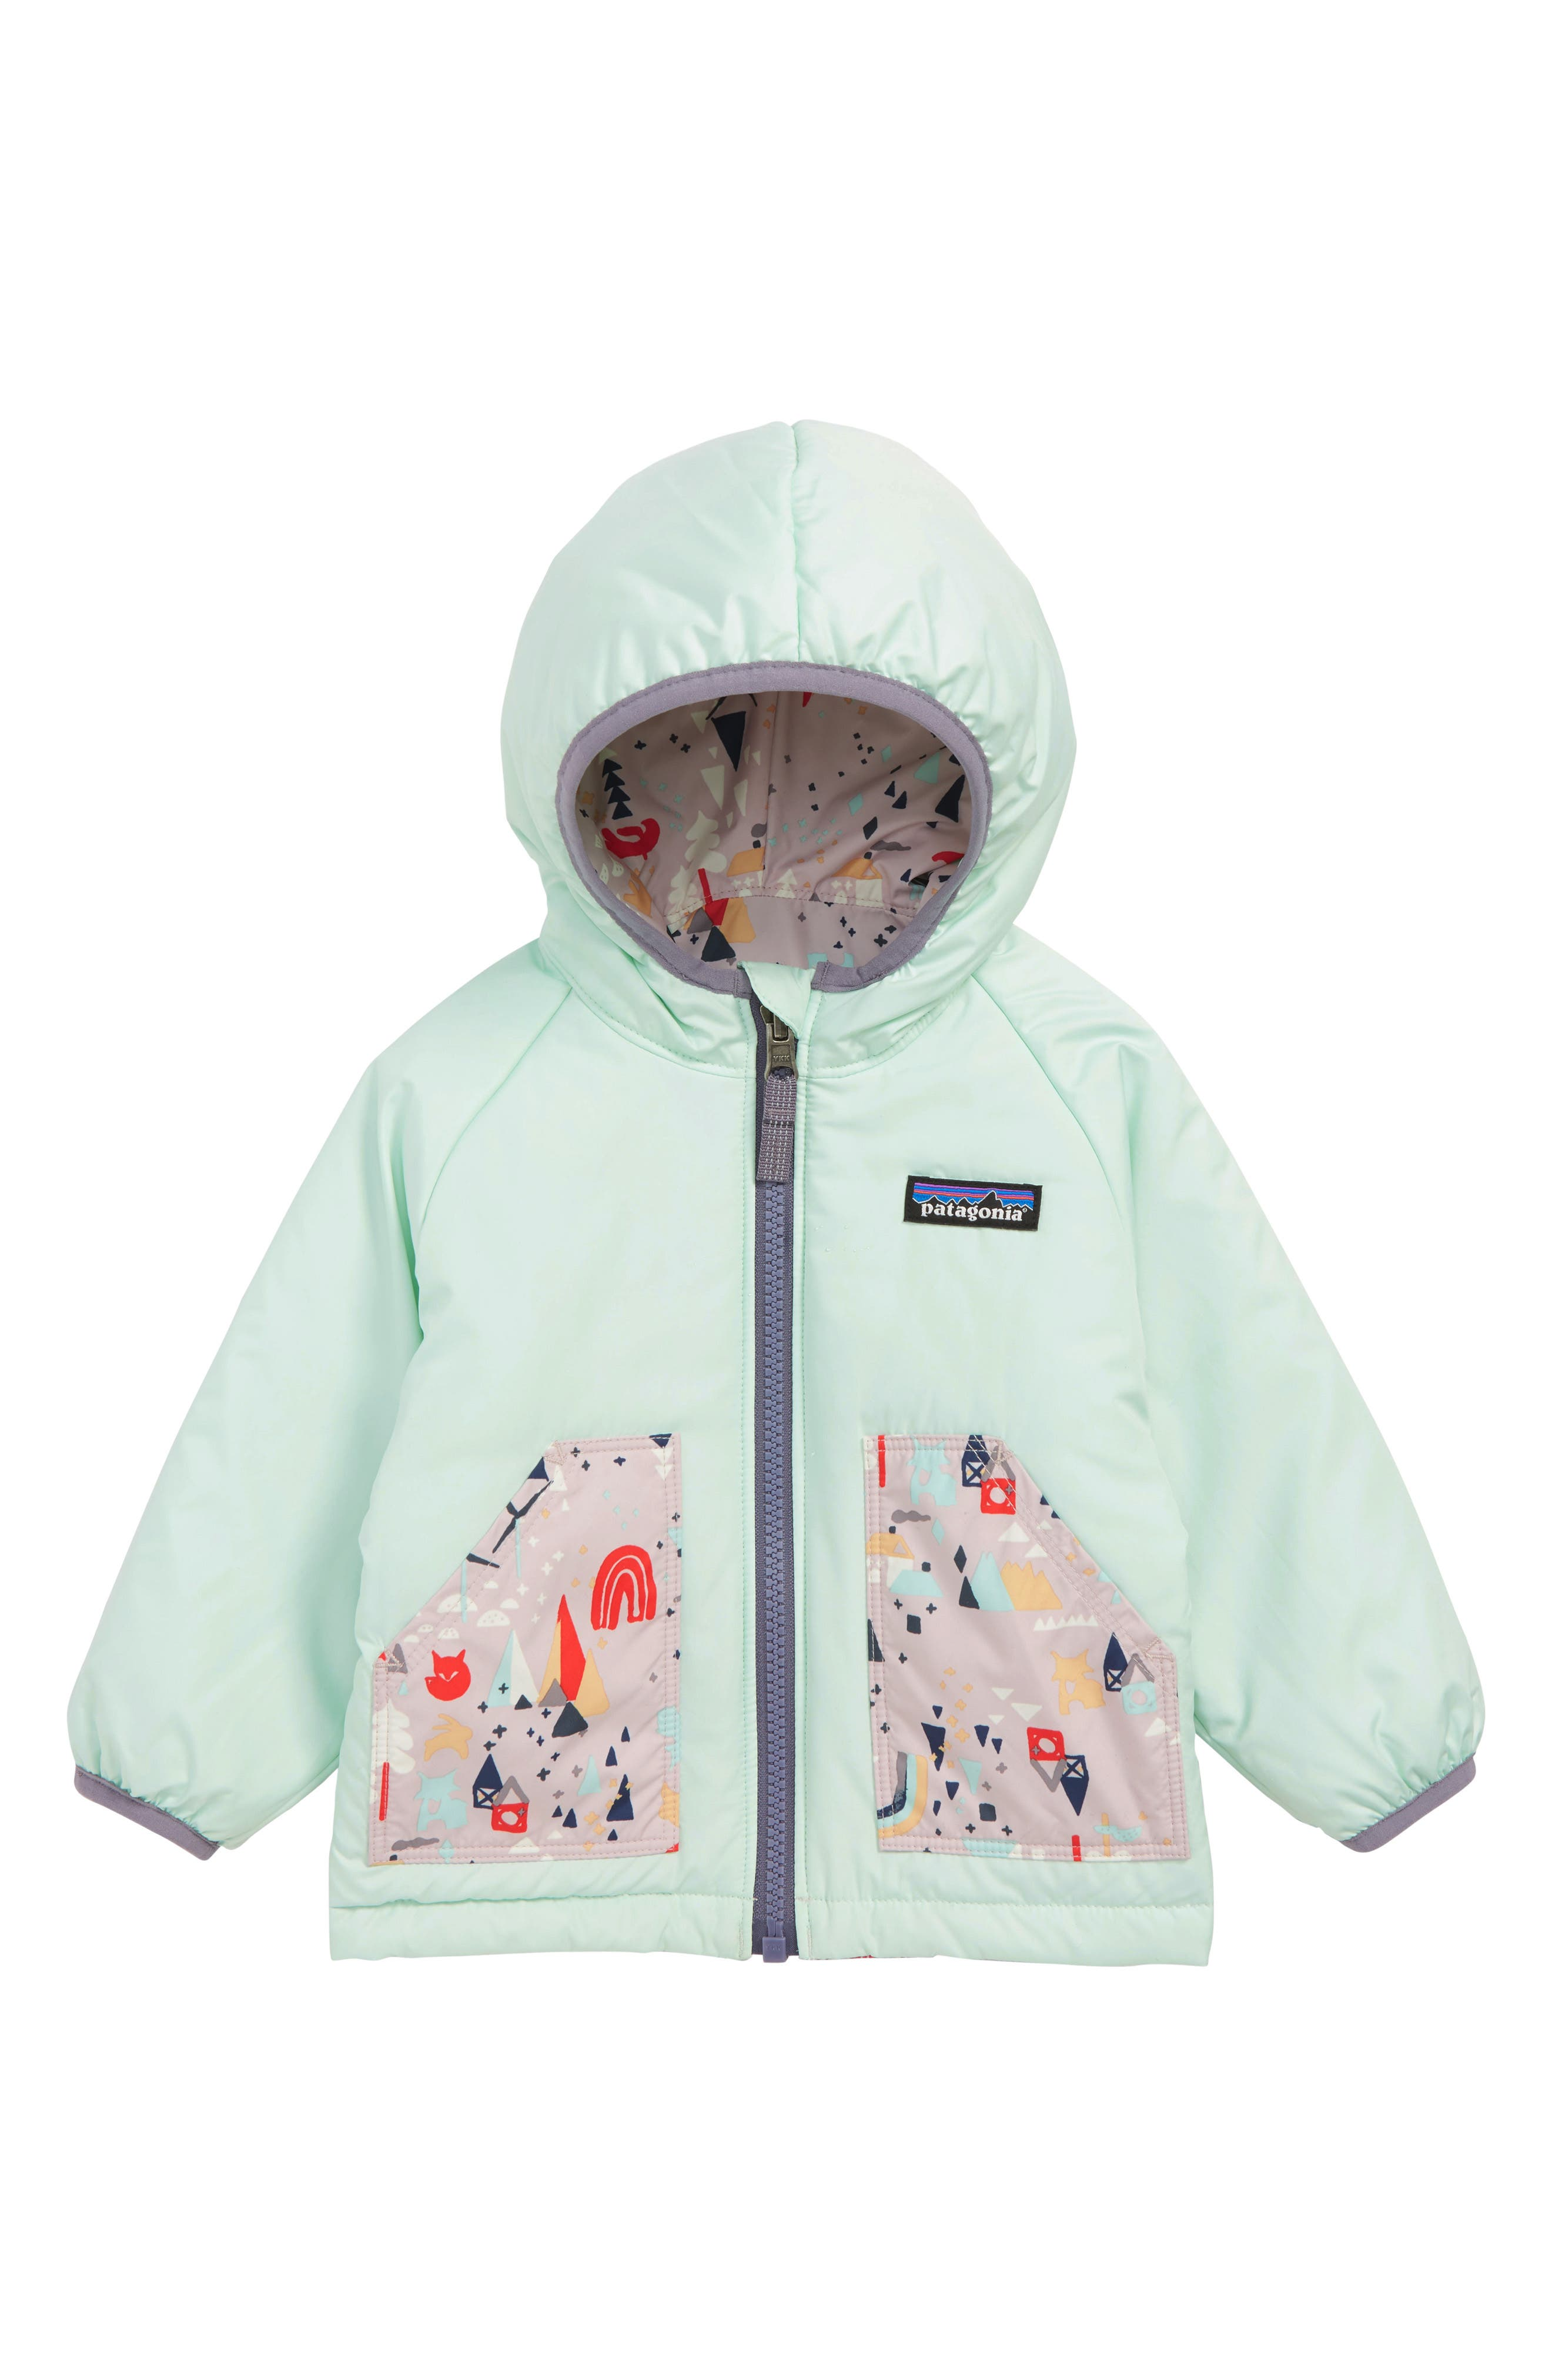 PATAGONIA, Puff Ball Water Resistant Thermogreen<sup>™</sup> Insulated Reversible Jacket, Alternate thumbnail 2, color, 020